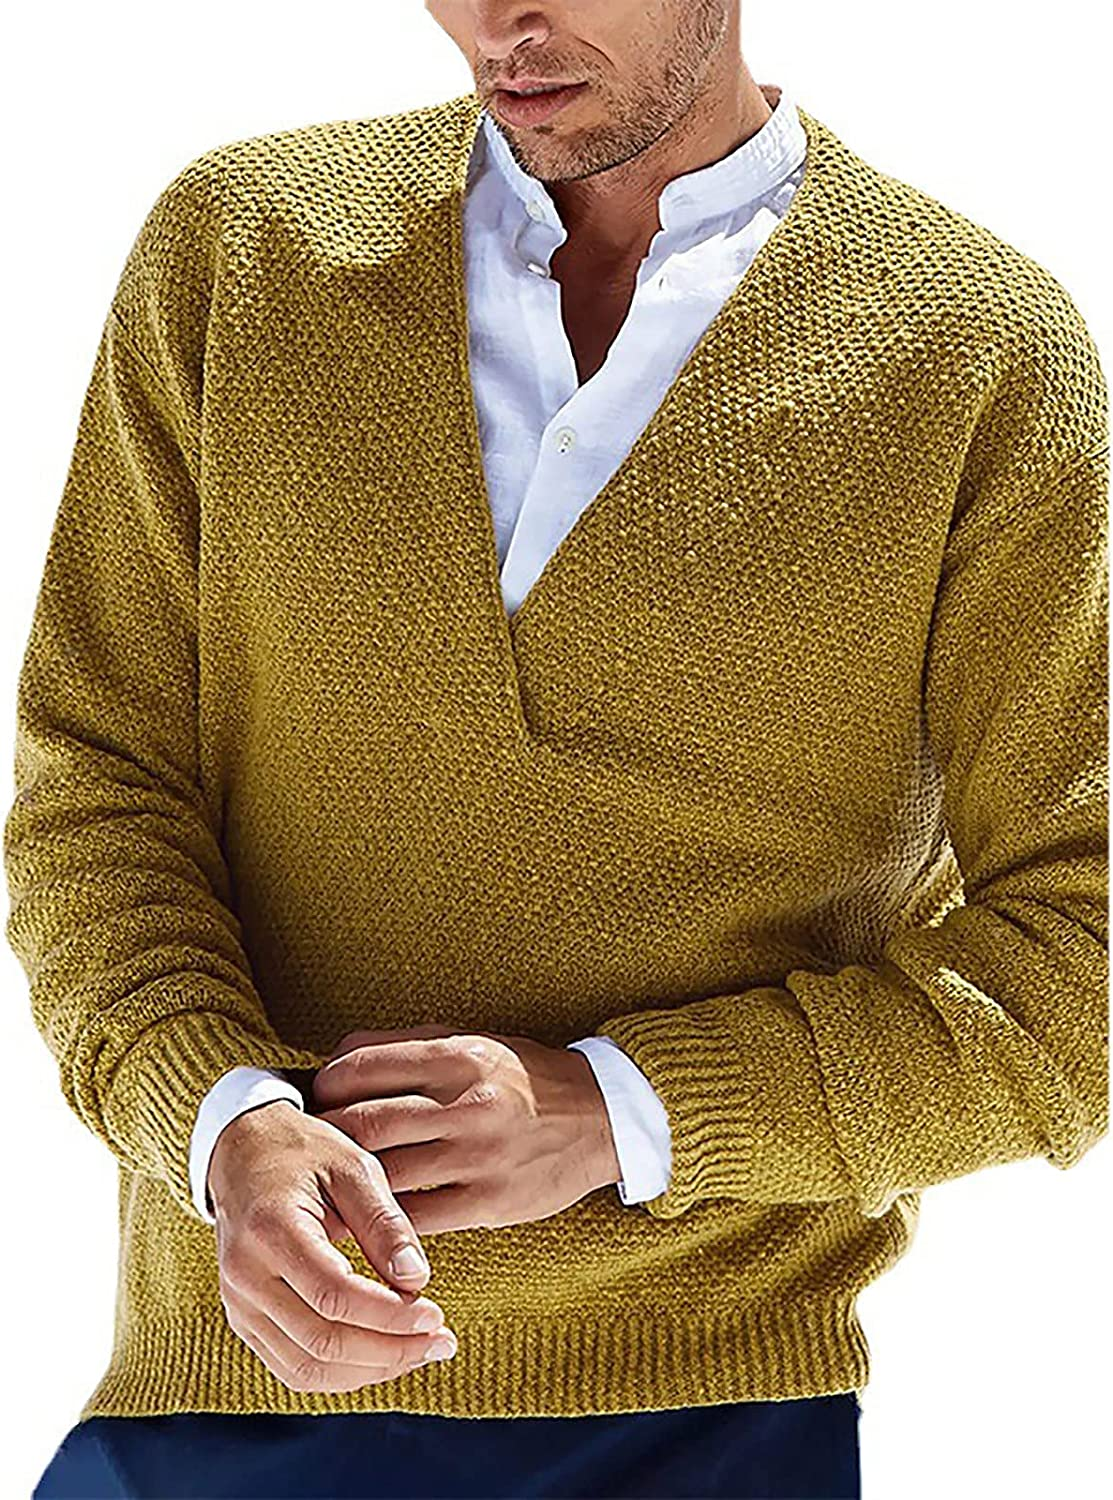 Sinzelimin Men's Knitwear Sweater Fashion V-Neck Solid Color Slim Fit Pullover Knitted Bottoming Sweater Henley Sweater